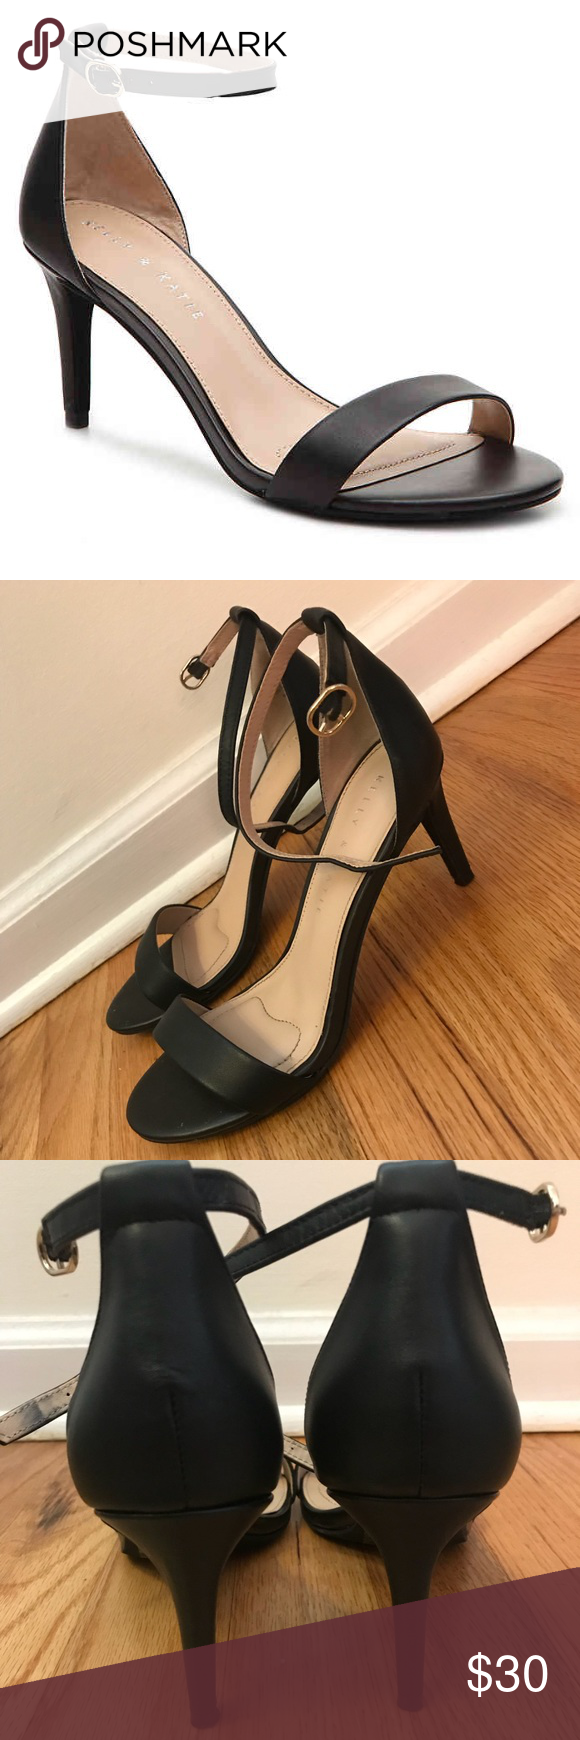 7aa65f083dd KELLY   KATIE KIRSTIE SANDAL These sandals perfectly pair with your  favorite skinny jeans or a